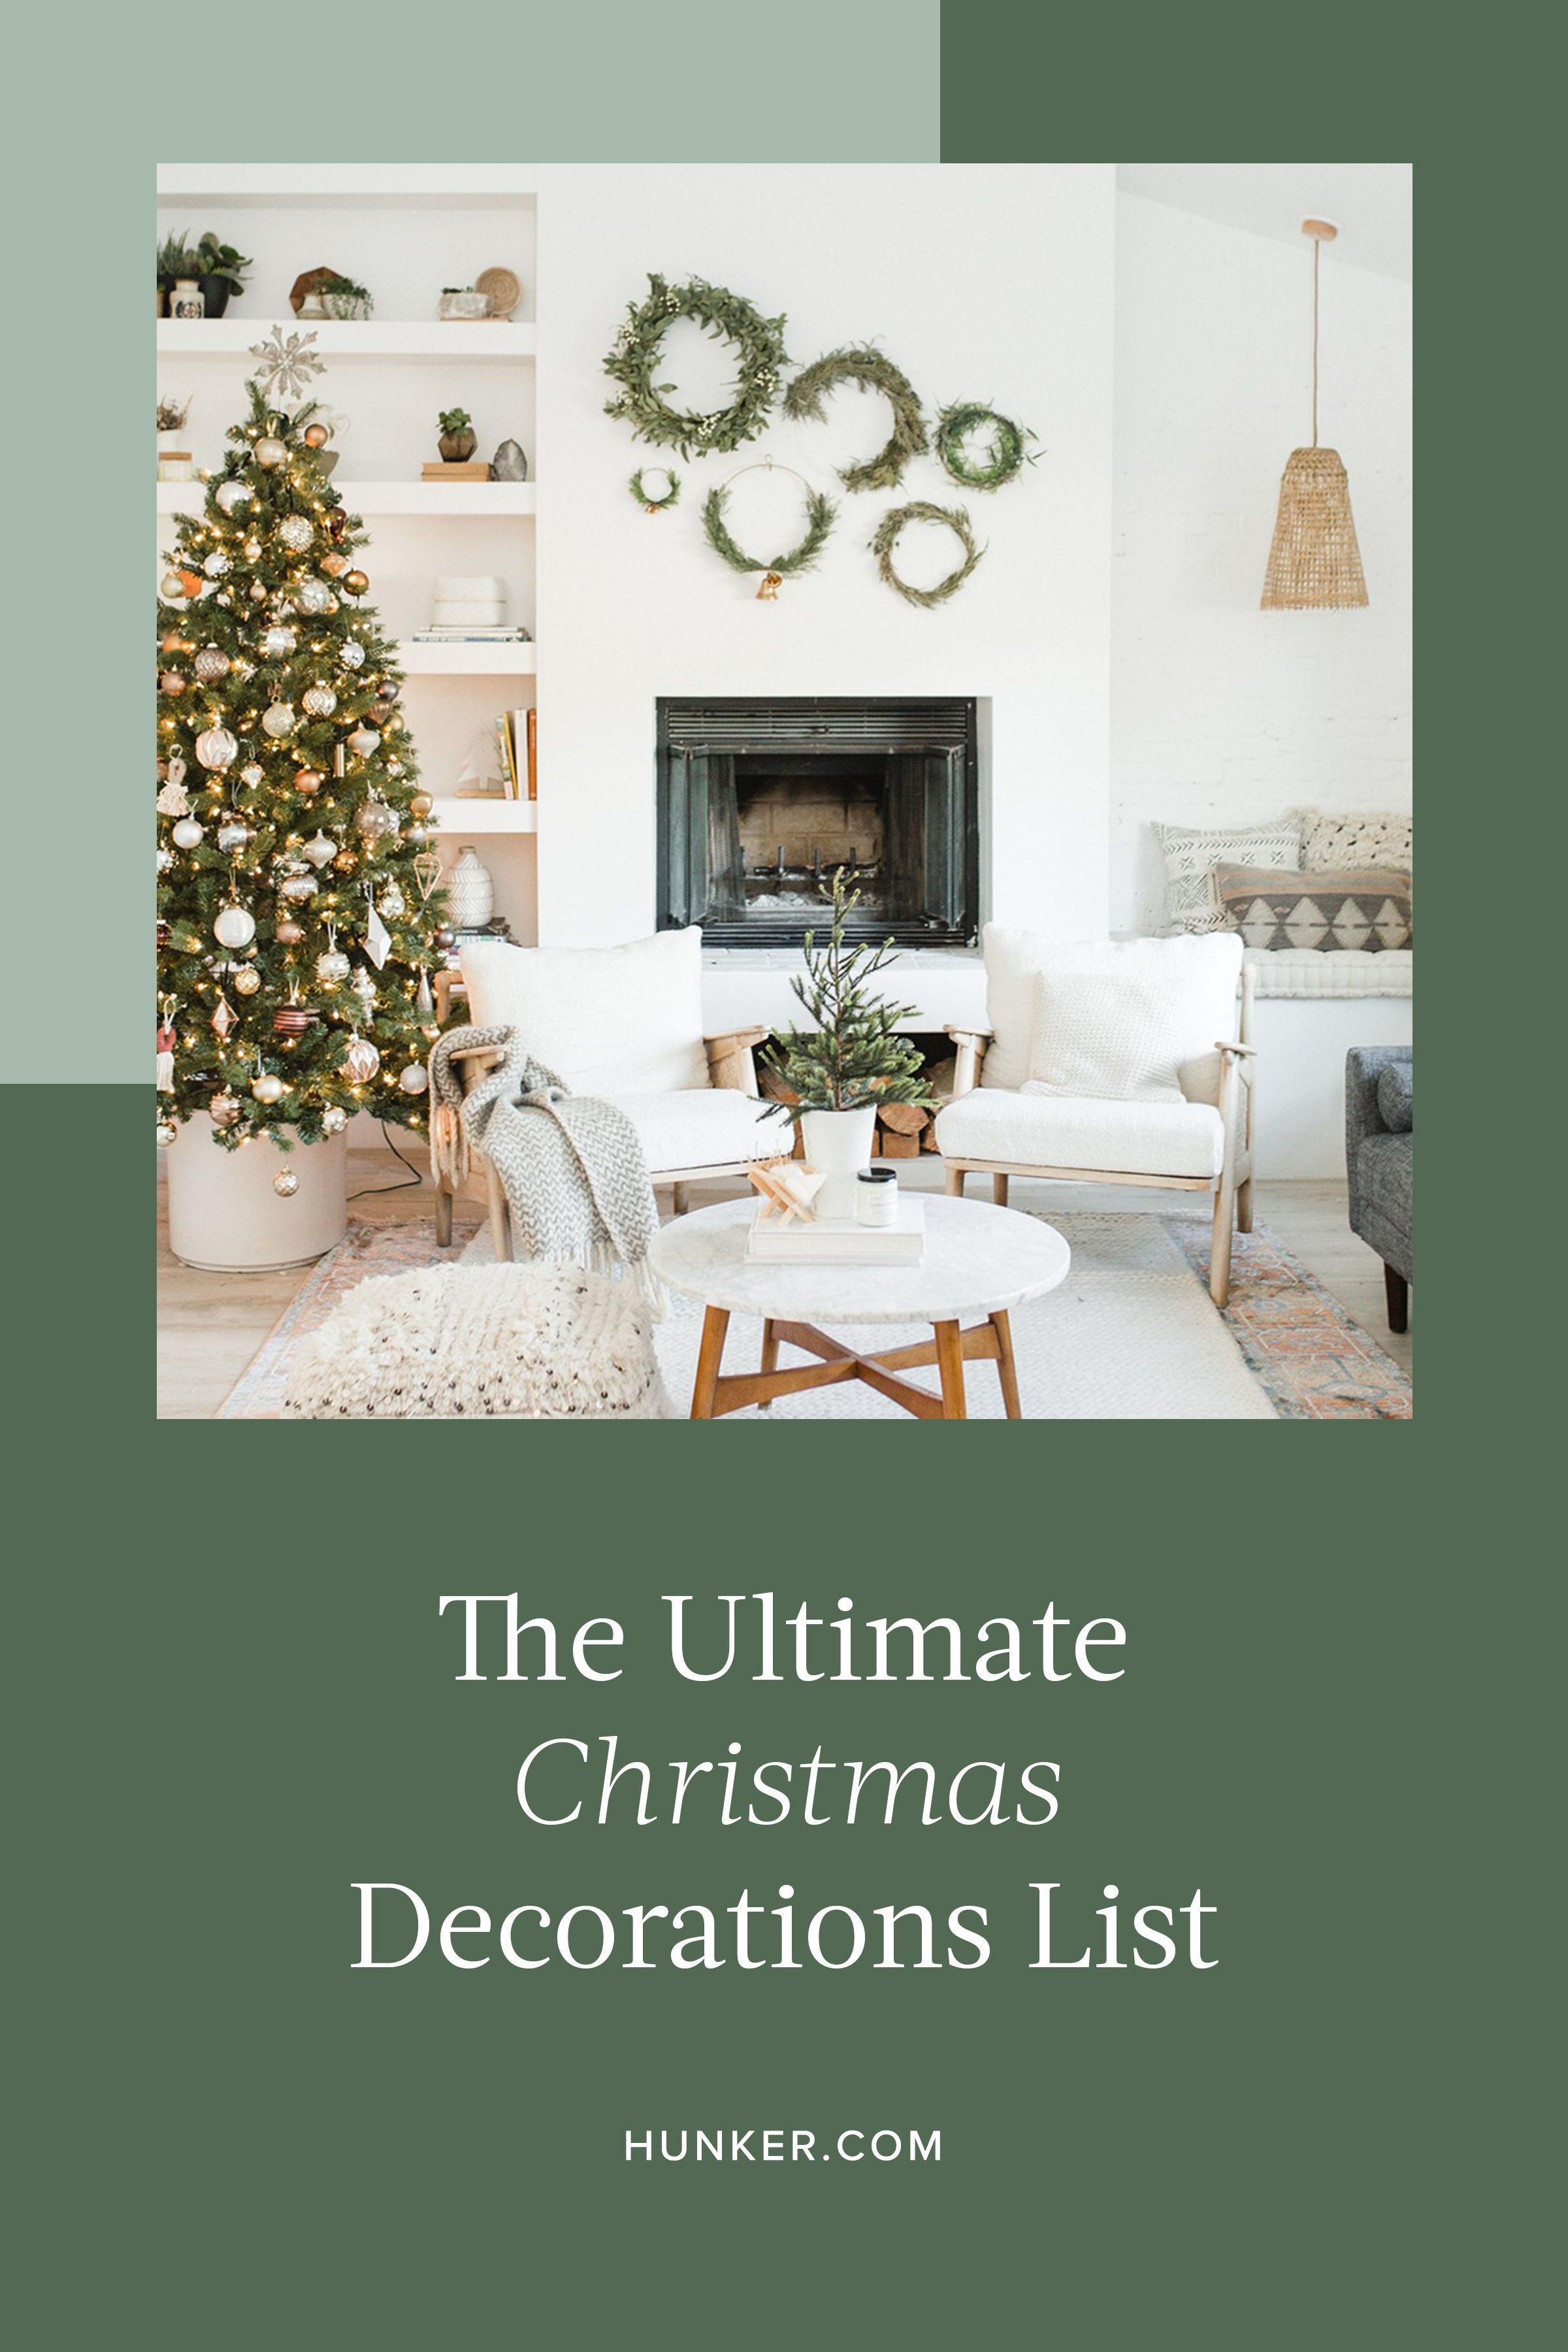 A Handy Christmas Decorations List To Ensure Your Holiday Season Is Merry And Bright Hunker Christmas Decorations List Christmas Decorations Decor